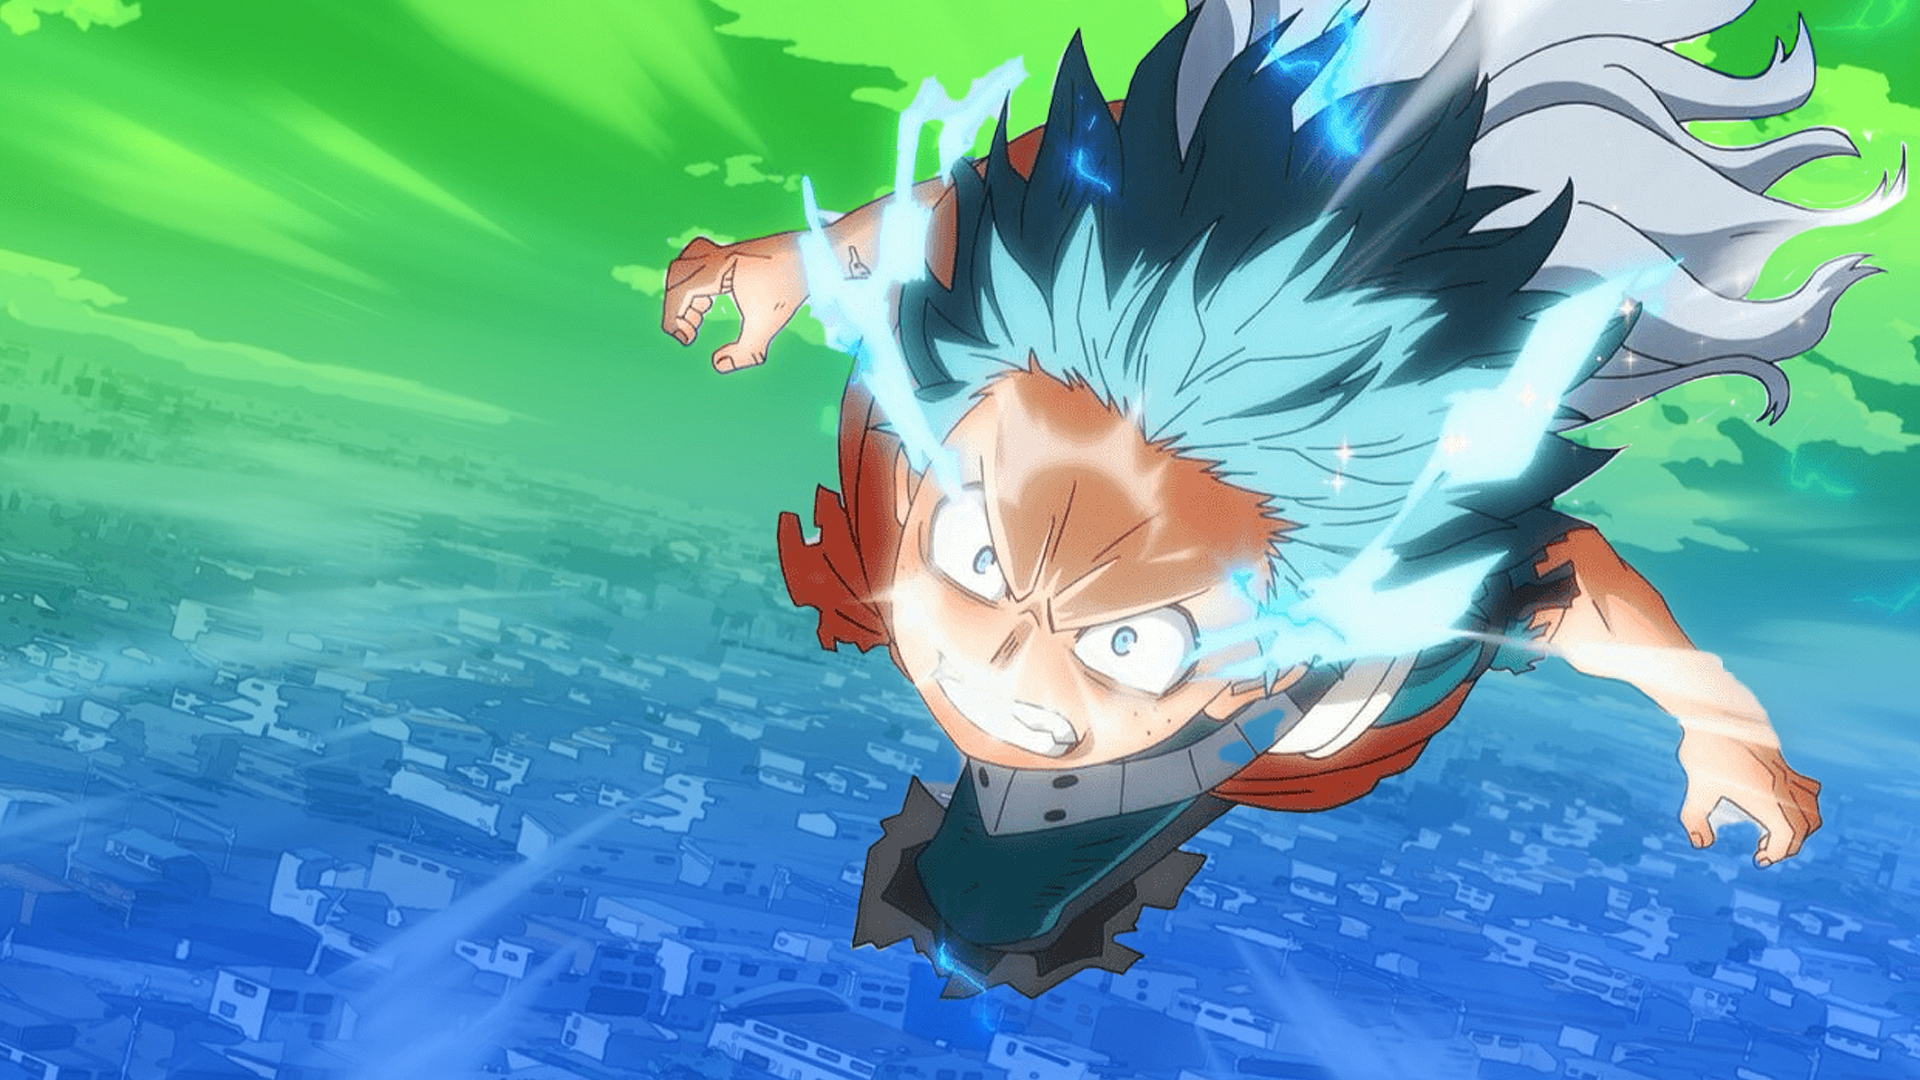 Anime character flying through the sky